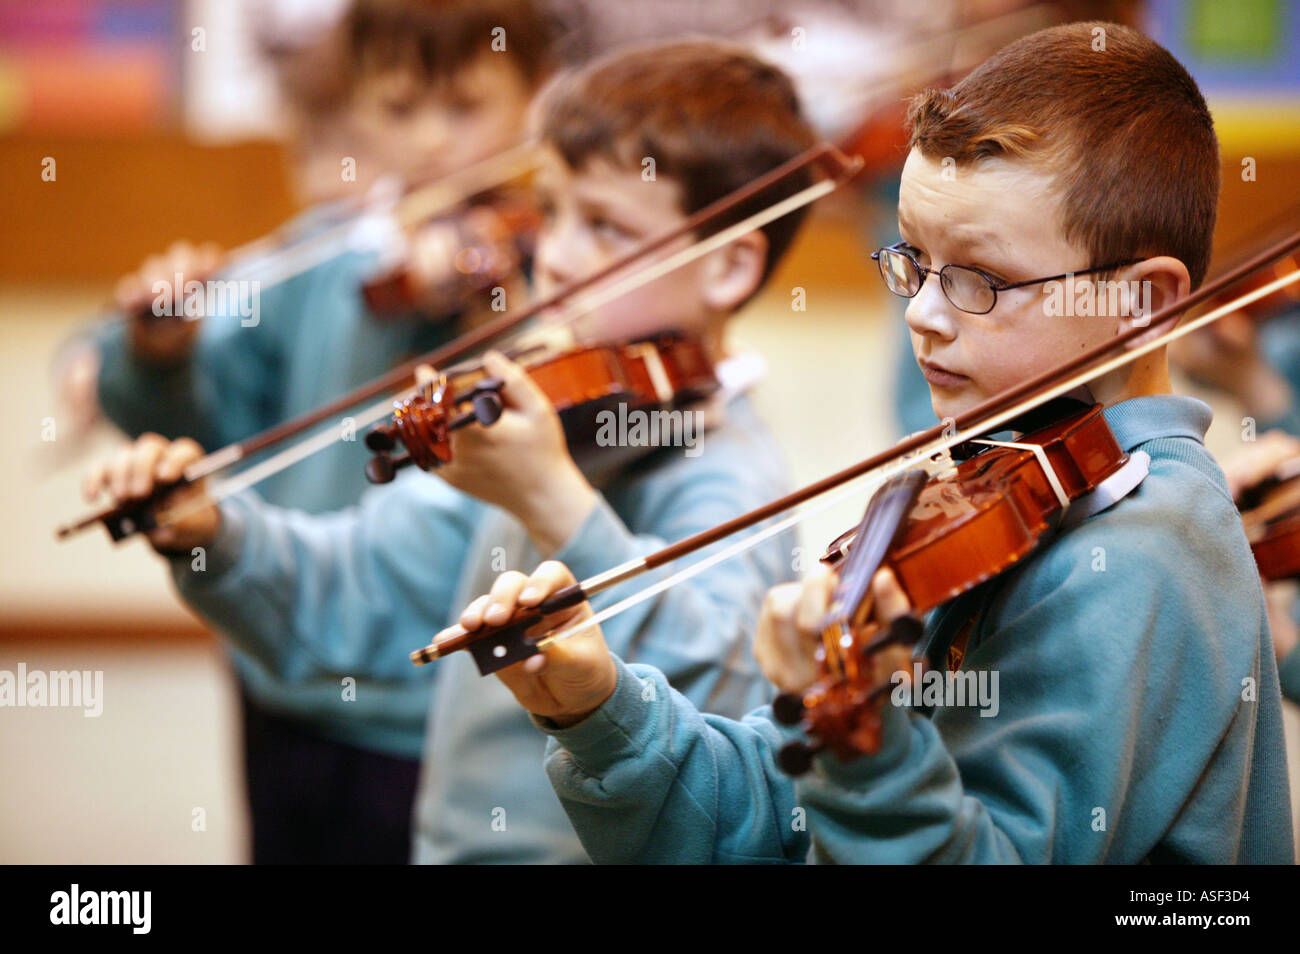 Violin lessons for year 4 pupils at St Lawrence primary school in Ludlow Shropshire UK April 2004 - Stock Image